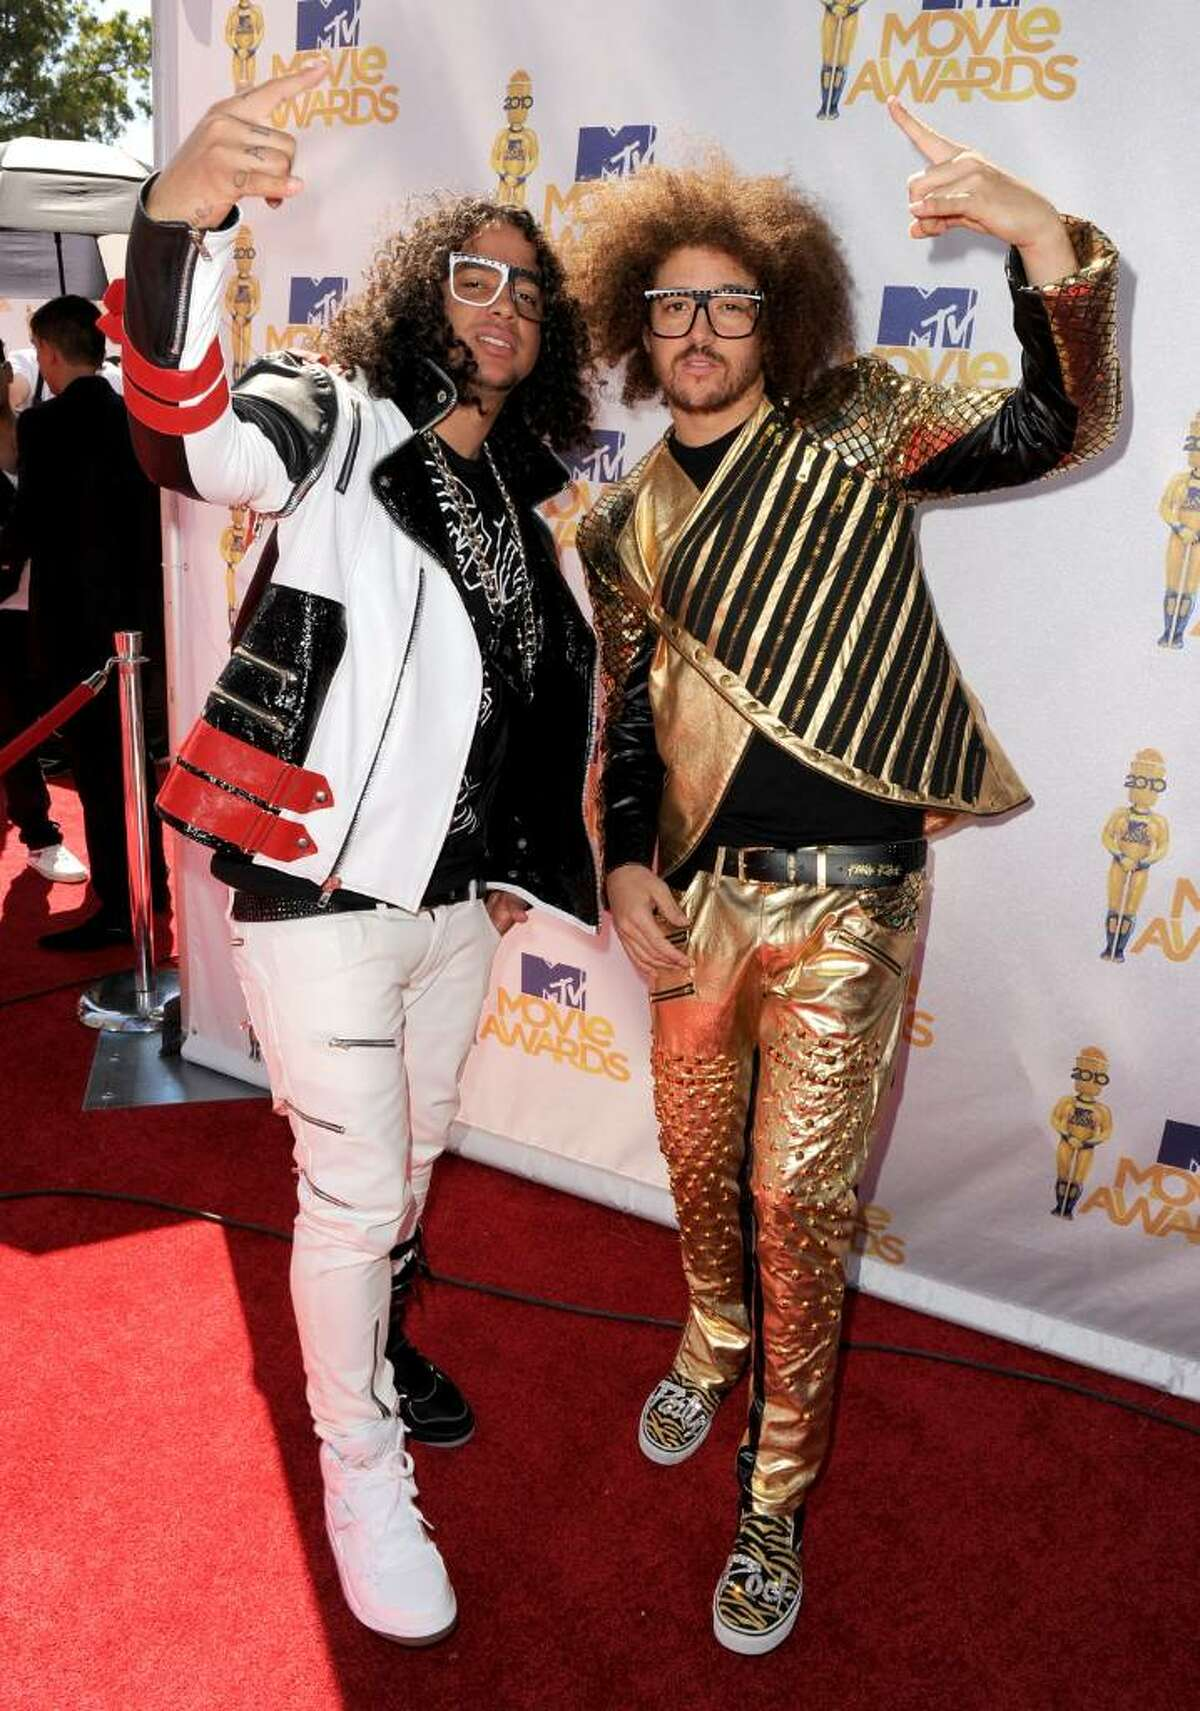 UNIVERSAL CITY, CA - JUNE 06: Sky Blu (L) and Redfoo of LMFAO arrive at the 2010 MTV Movie Awards held at the Gibson Amphitheatre at Universal Studios on June 6, 2010 in Universal City, California. (Photo by Kevin Winter/Getty Images) *** Local Caption *** Redfoo;Sky Blu